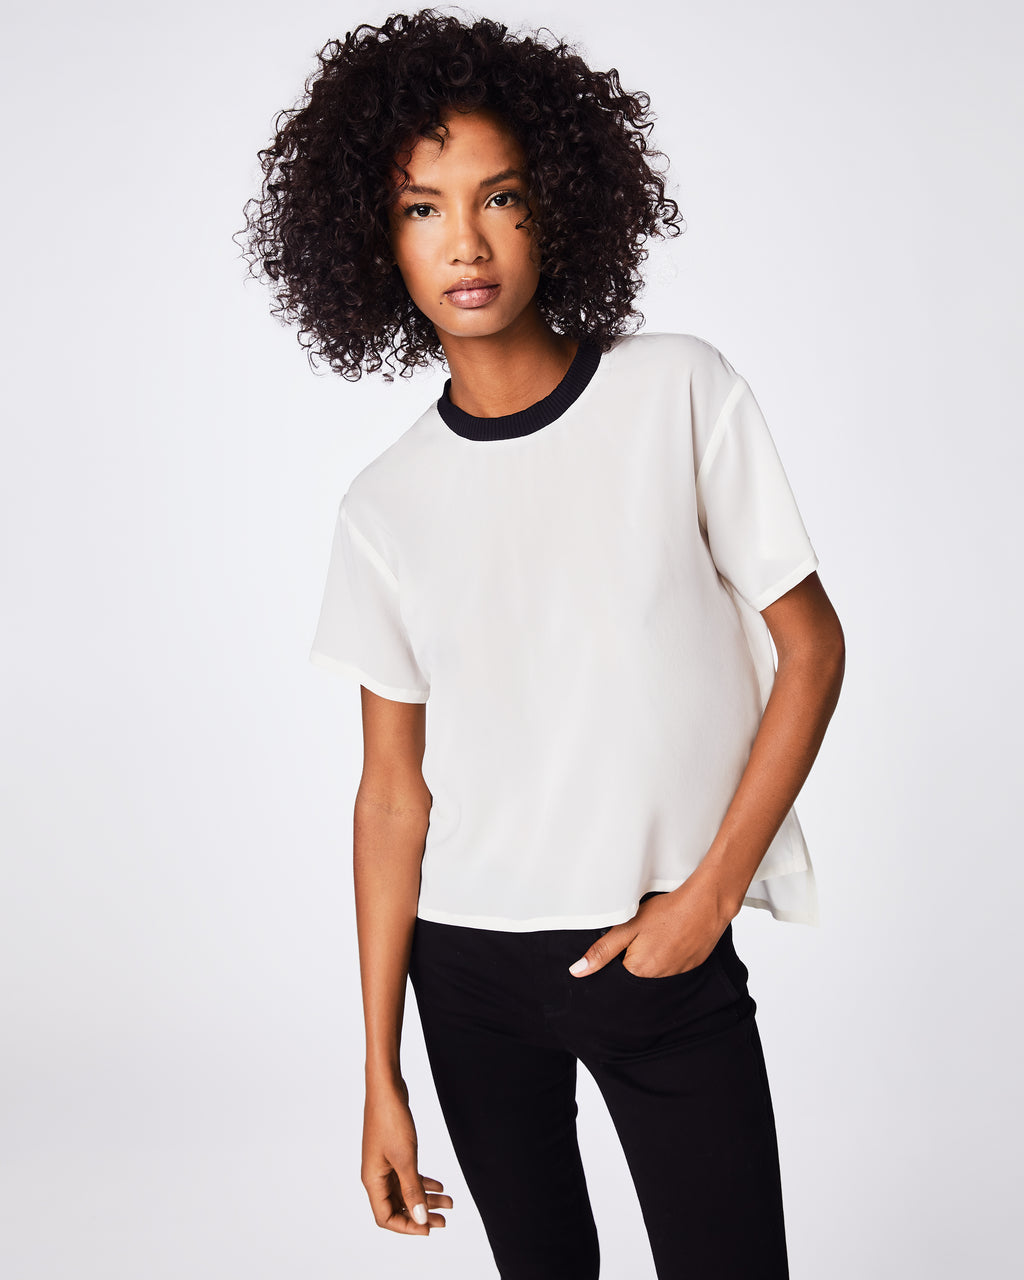 AR10077 - SOLID SILK BLEND T-SHIRT - tops - shirts - Your go-to shirt, every season. A blend of casual and dressy, this solid silk shirt goes with just about anything. Wear with jeans or a skirt.